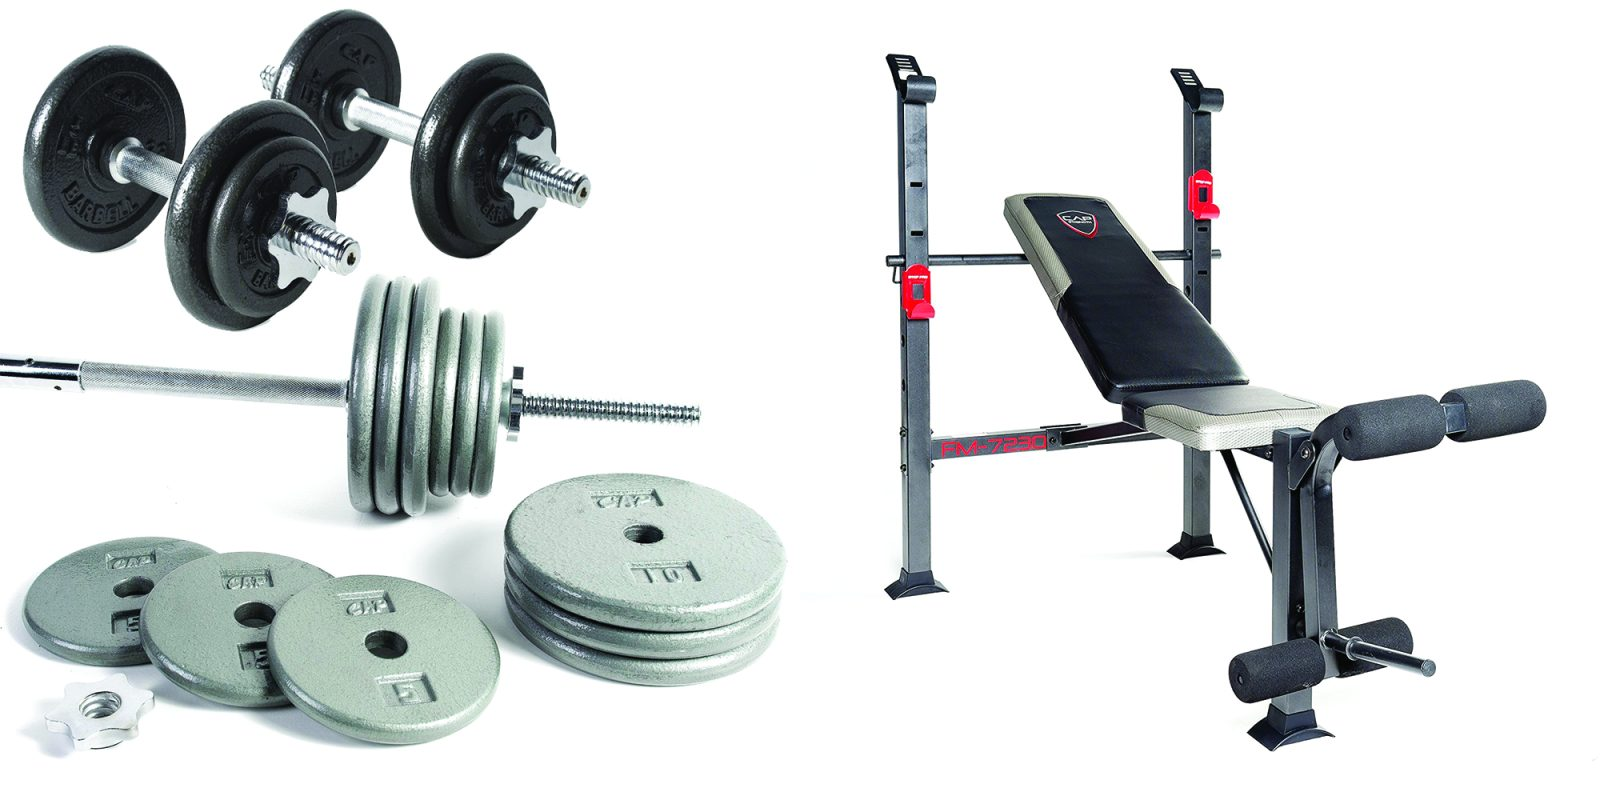 50ca33f50d8d Jump start 2017 with new CAP Strength Training Gear in today's Gold Box: 40-lb.  Adjustable Dumbbell Set $40, more